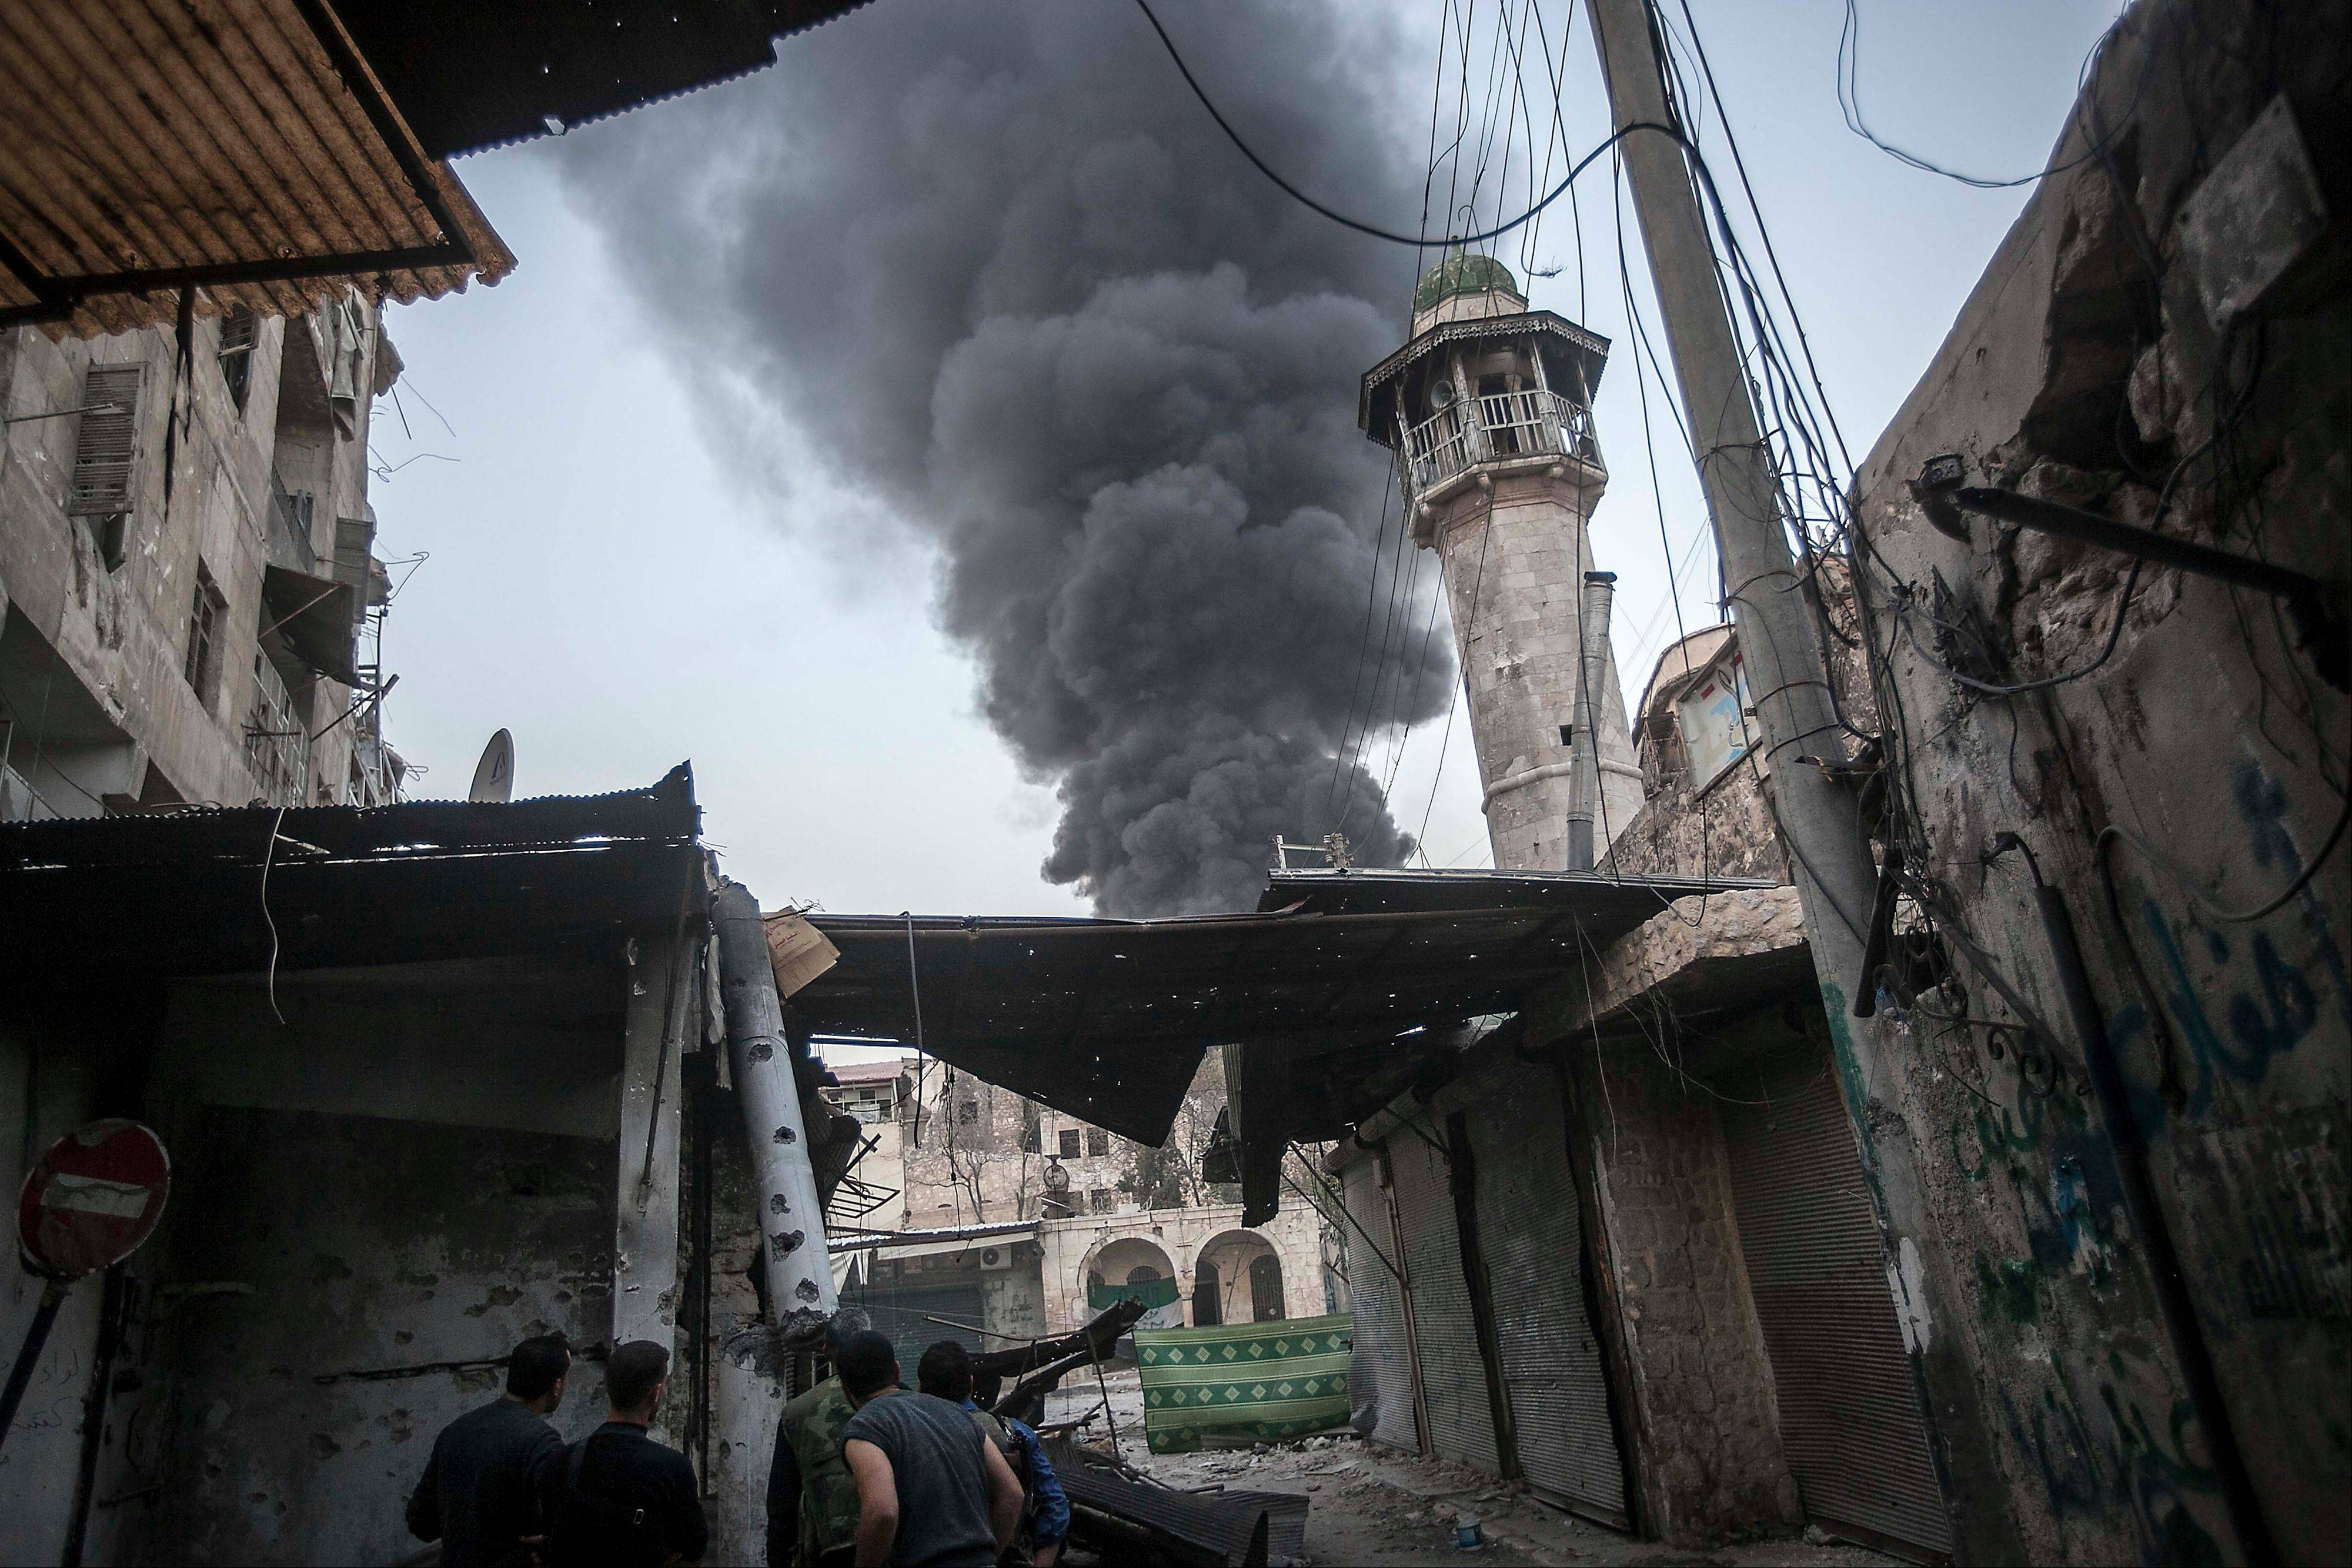 Rebel fighters watch as smoke rises Sunday after Syrian government forces fired an artillery round at a rebel position during heavy clashes in the Jedida district of Aleppo, Syria.